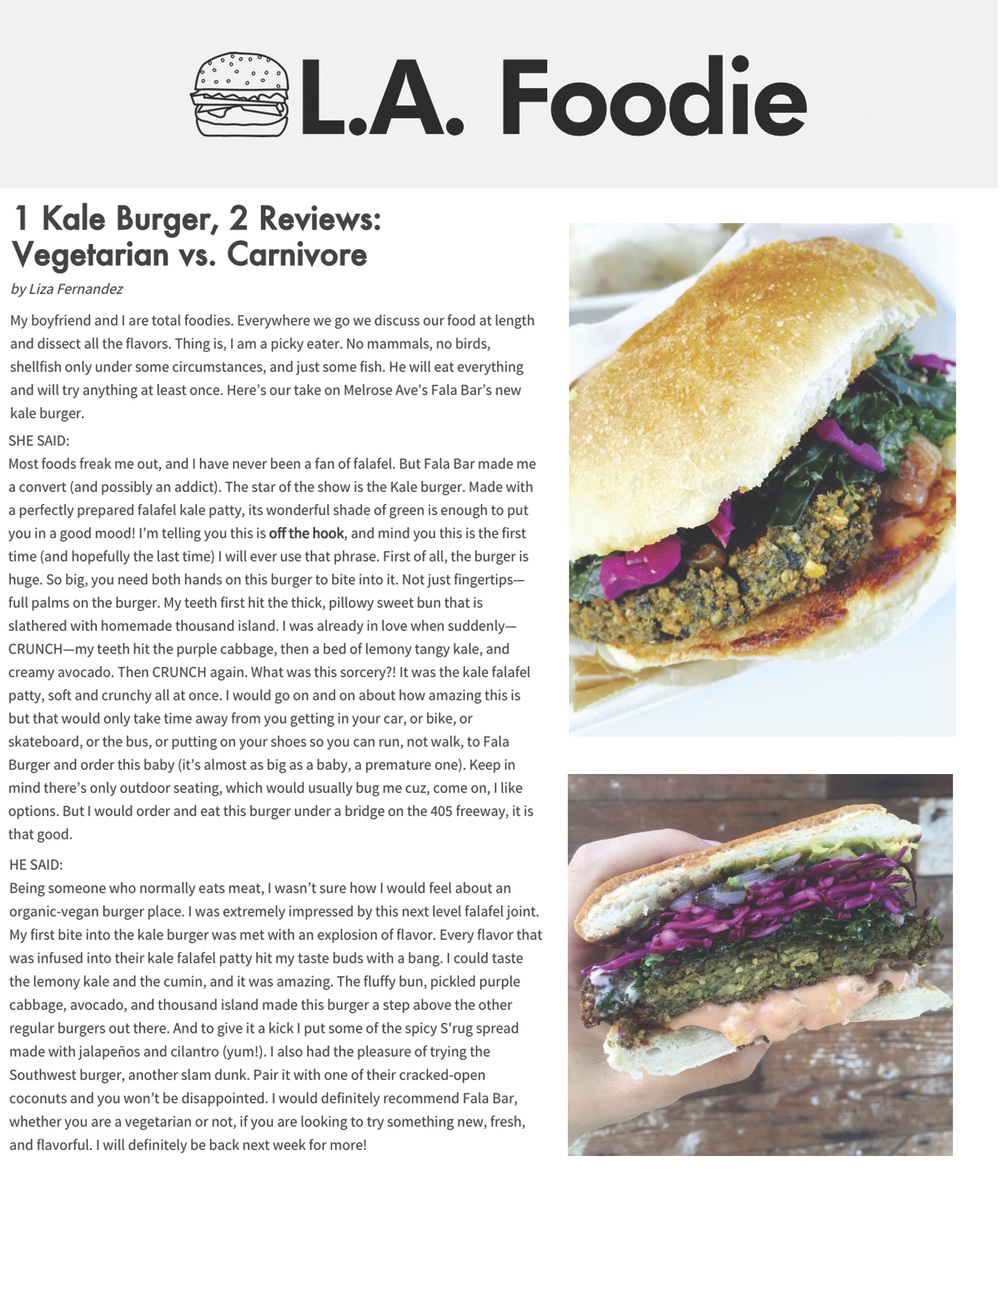 Report about Fala Bar / L.A. Foodie